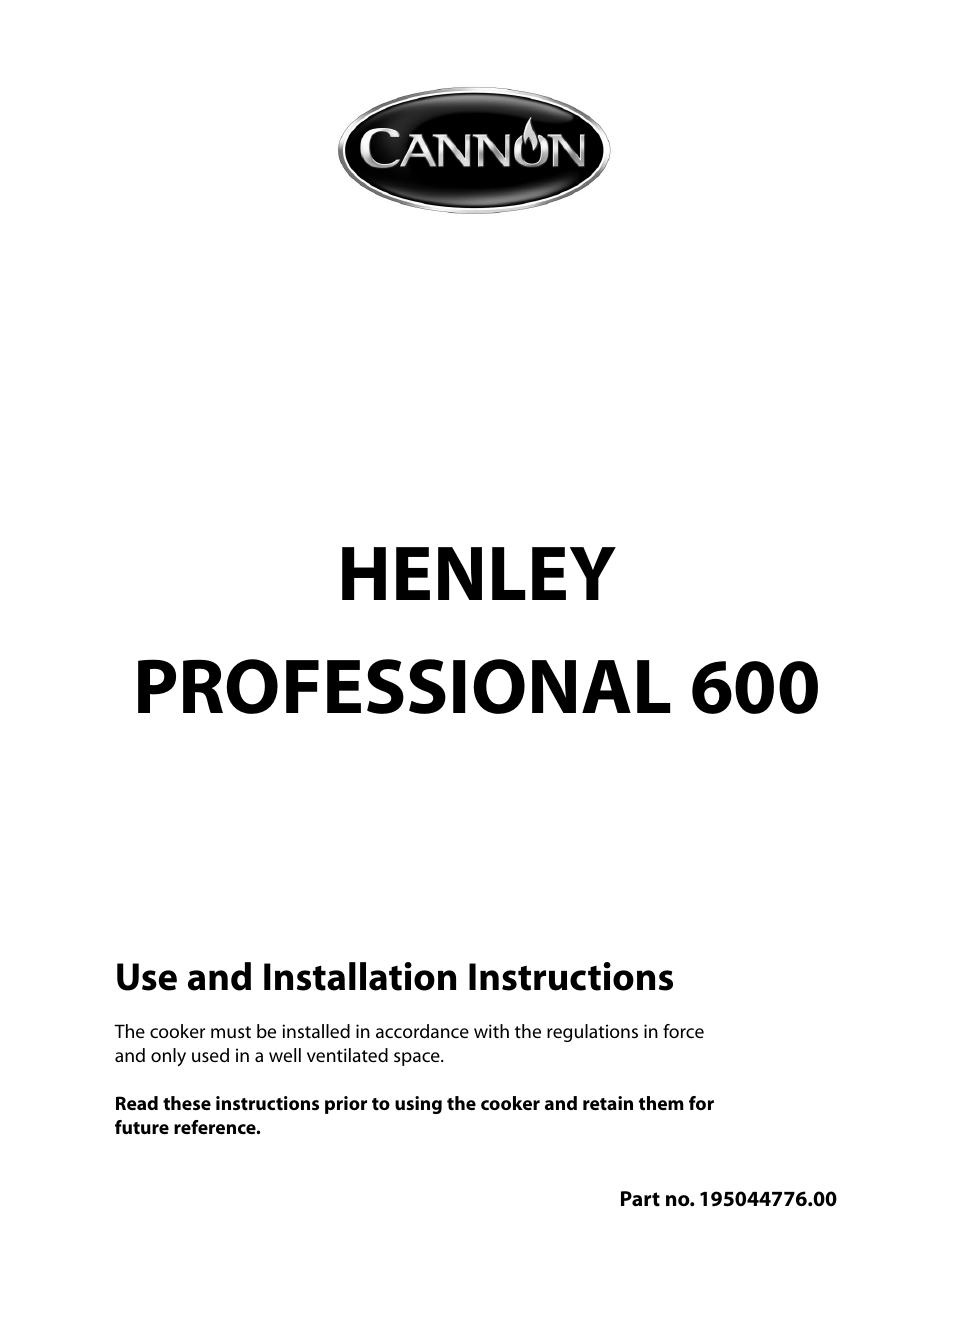 cannon henley professional 600 10685g user manual 28 pages also rh manualsdir com Double Oven Dual Fuel Range Range Cookers